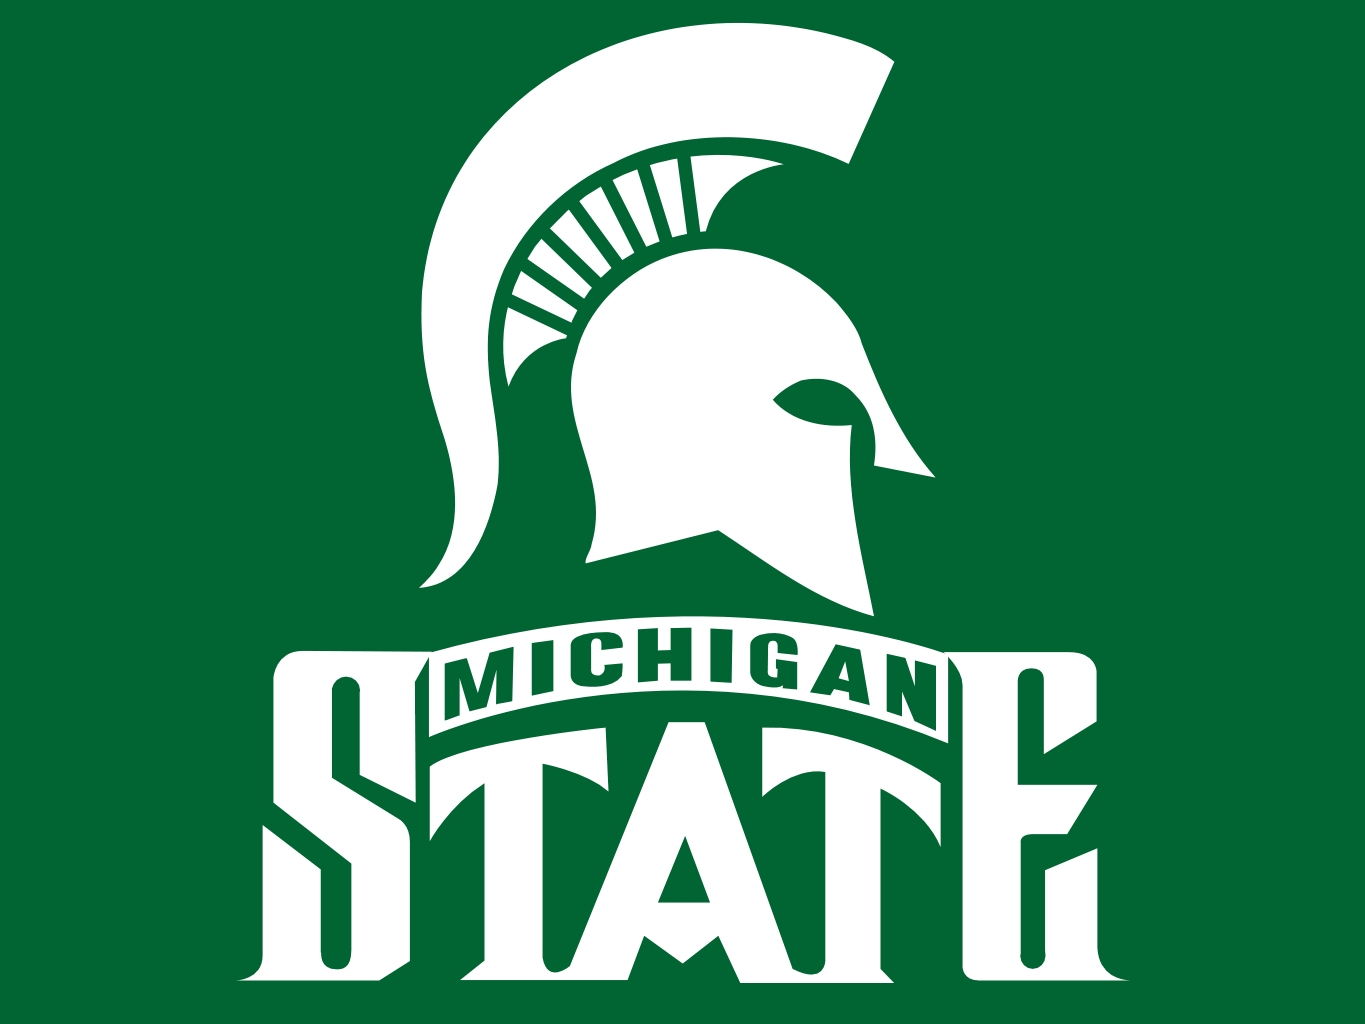 Michigan state spartans logo clipart png royalty free Free MSU Cliparts, Download Free Clip Art, Free Clip Art on ... png royalty free